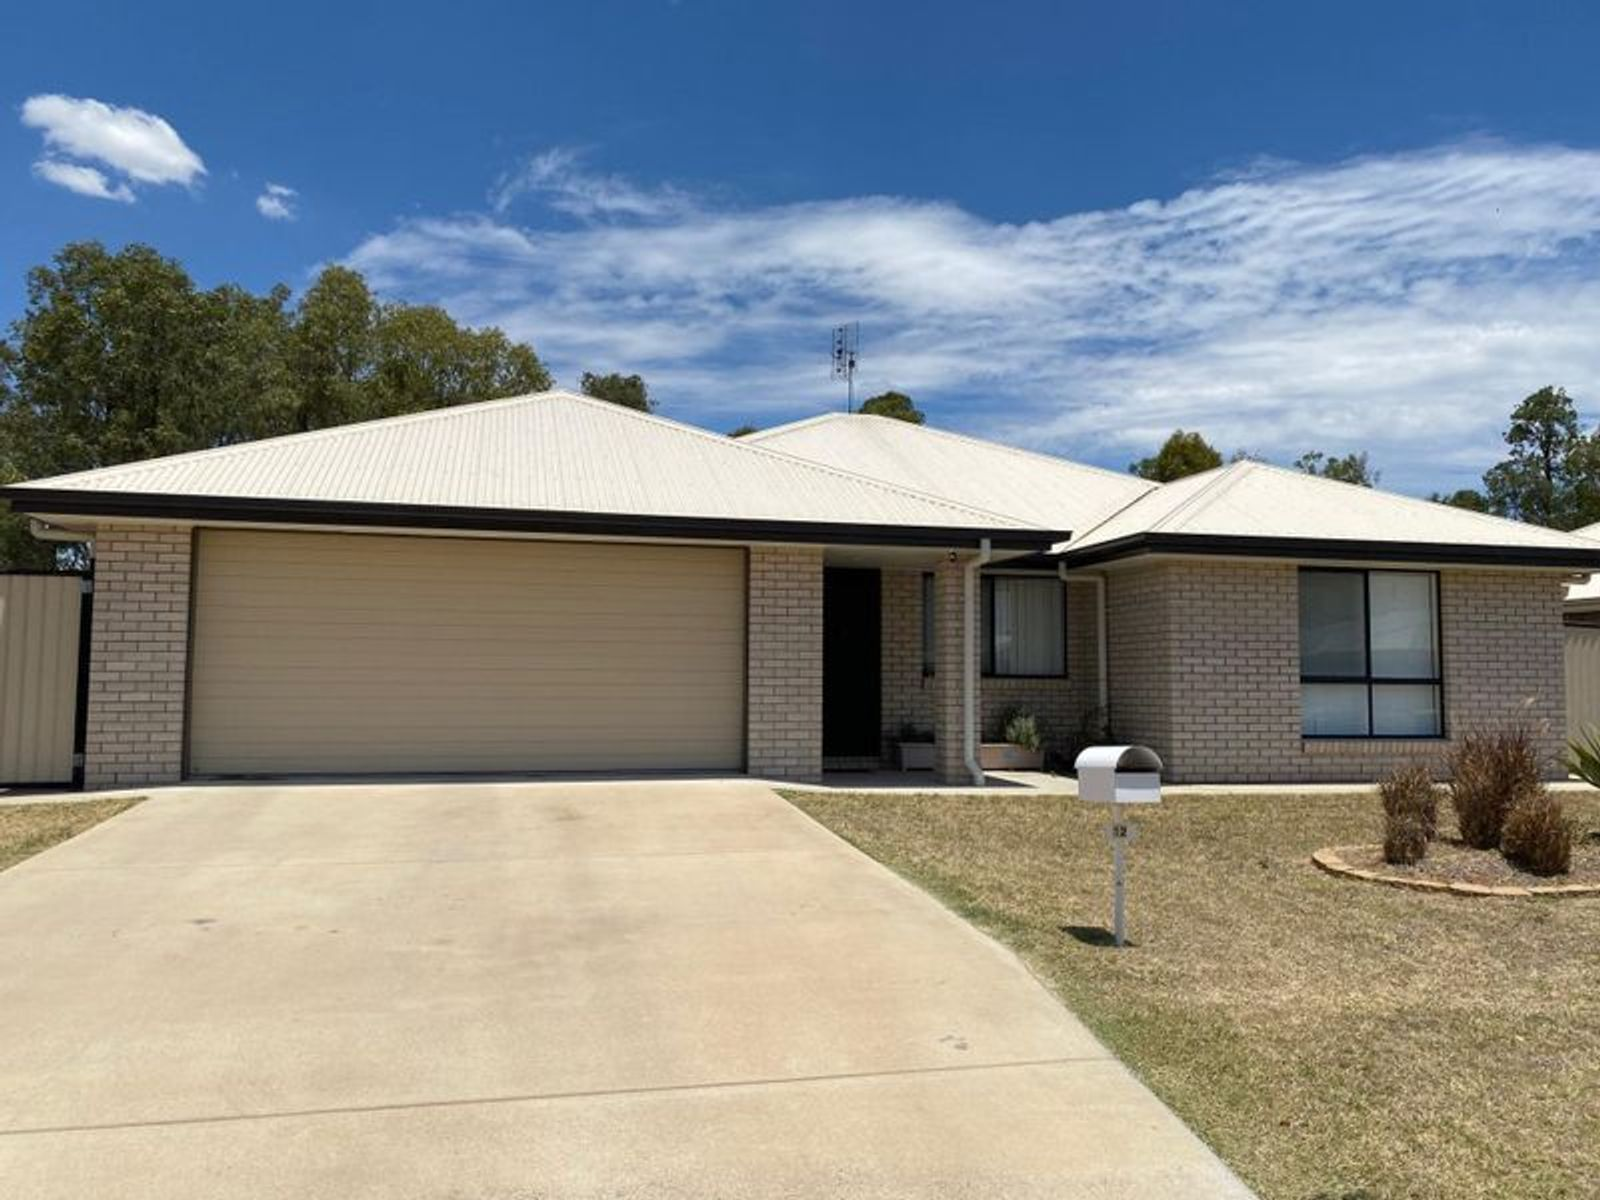 12 Cameron Street, Chinchilla, QLD 4413